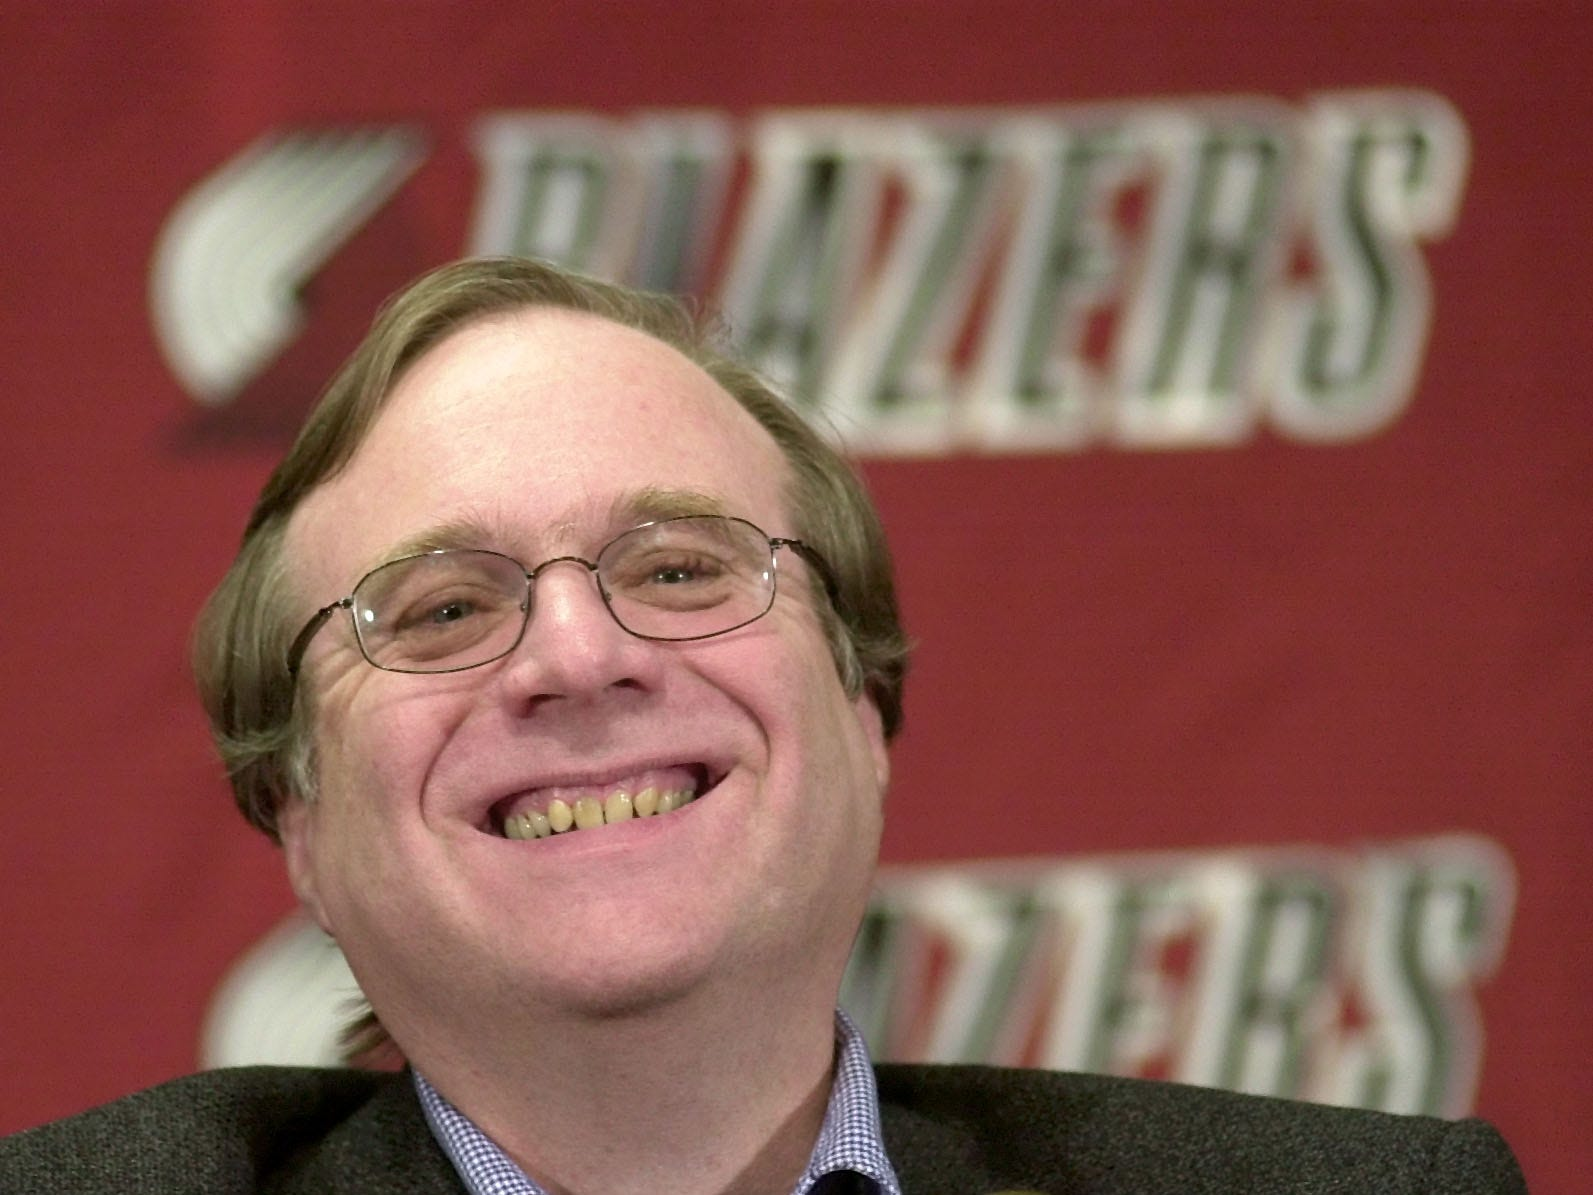 Portland Trail Blazers owner Paul Allen smiles as he talks at the Rose Garden arena during halftime of the Blazers game against the Utah Jazz in Portland, Ore., Tuesday, Feb. 10, 2004.